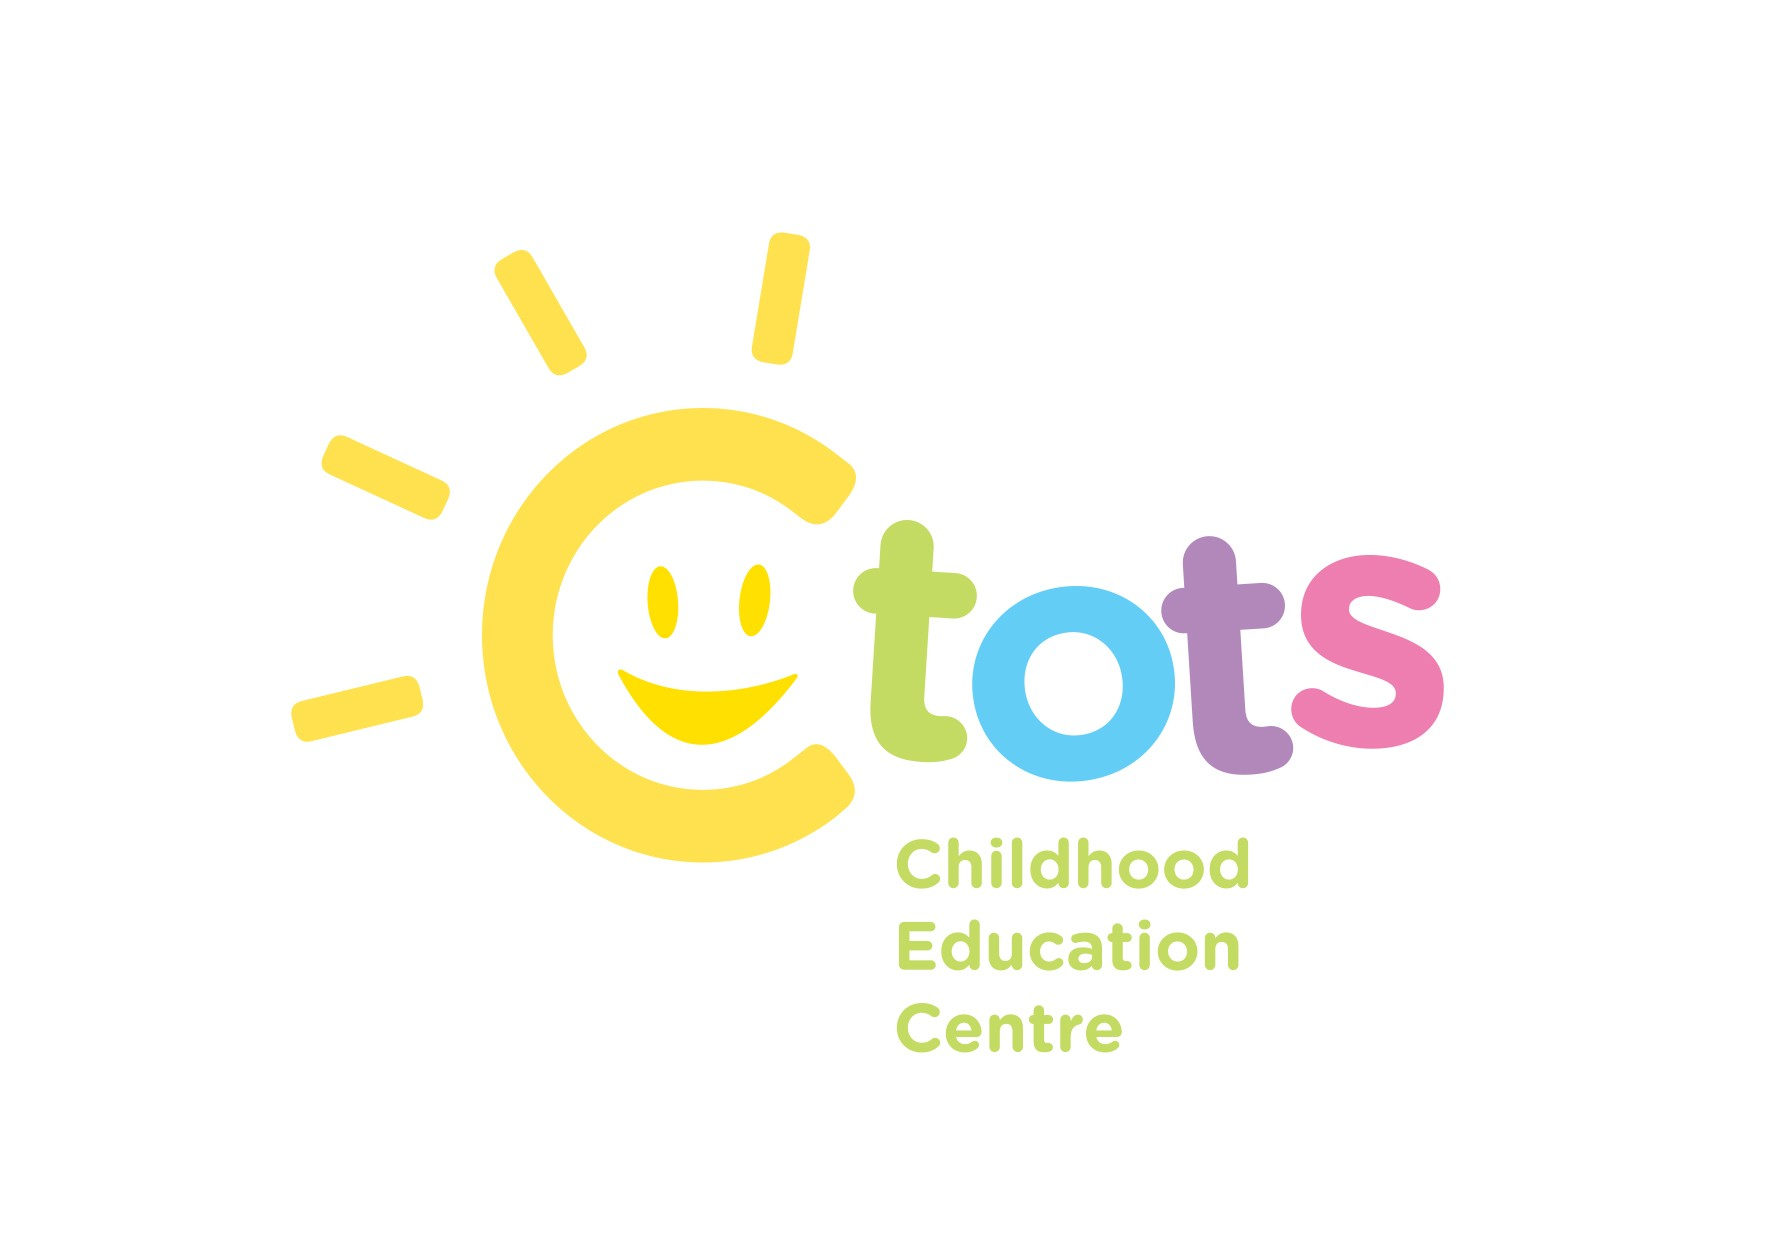 Ctots Childhood Education Centre logo